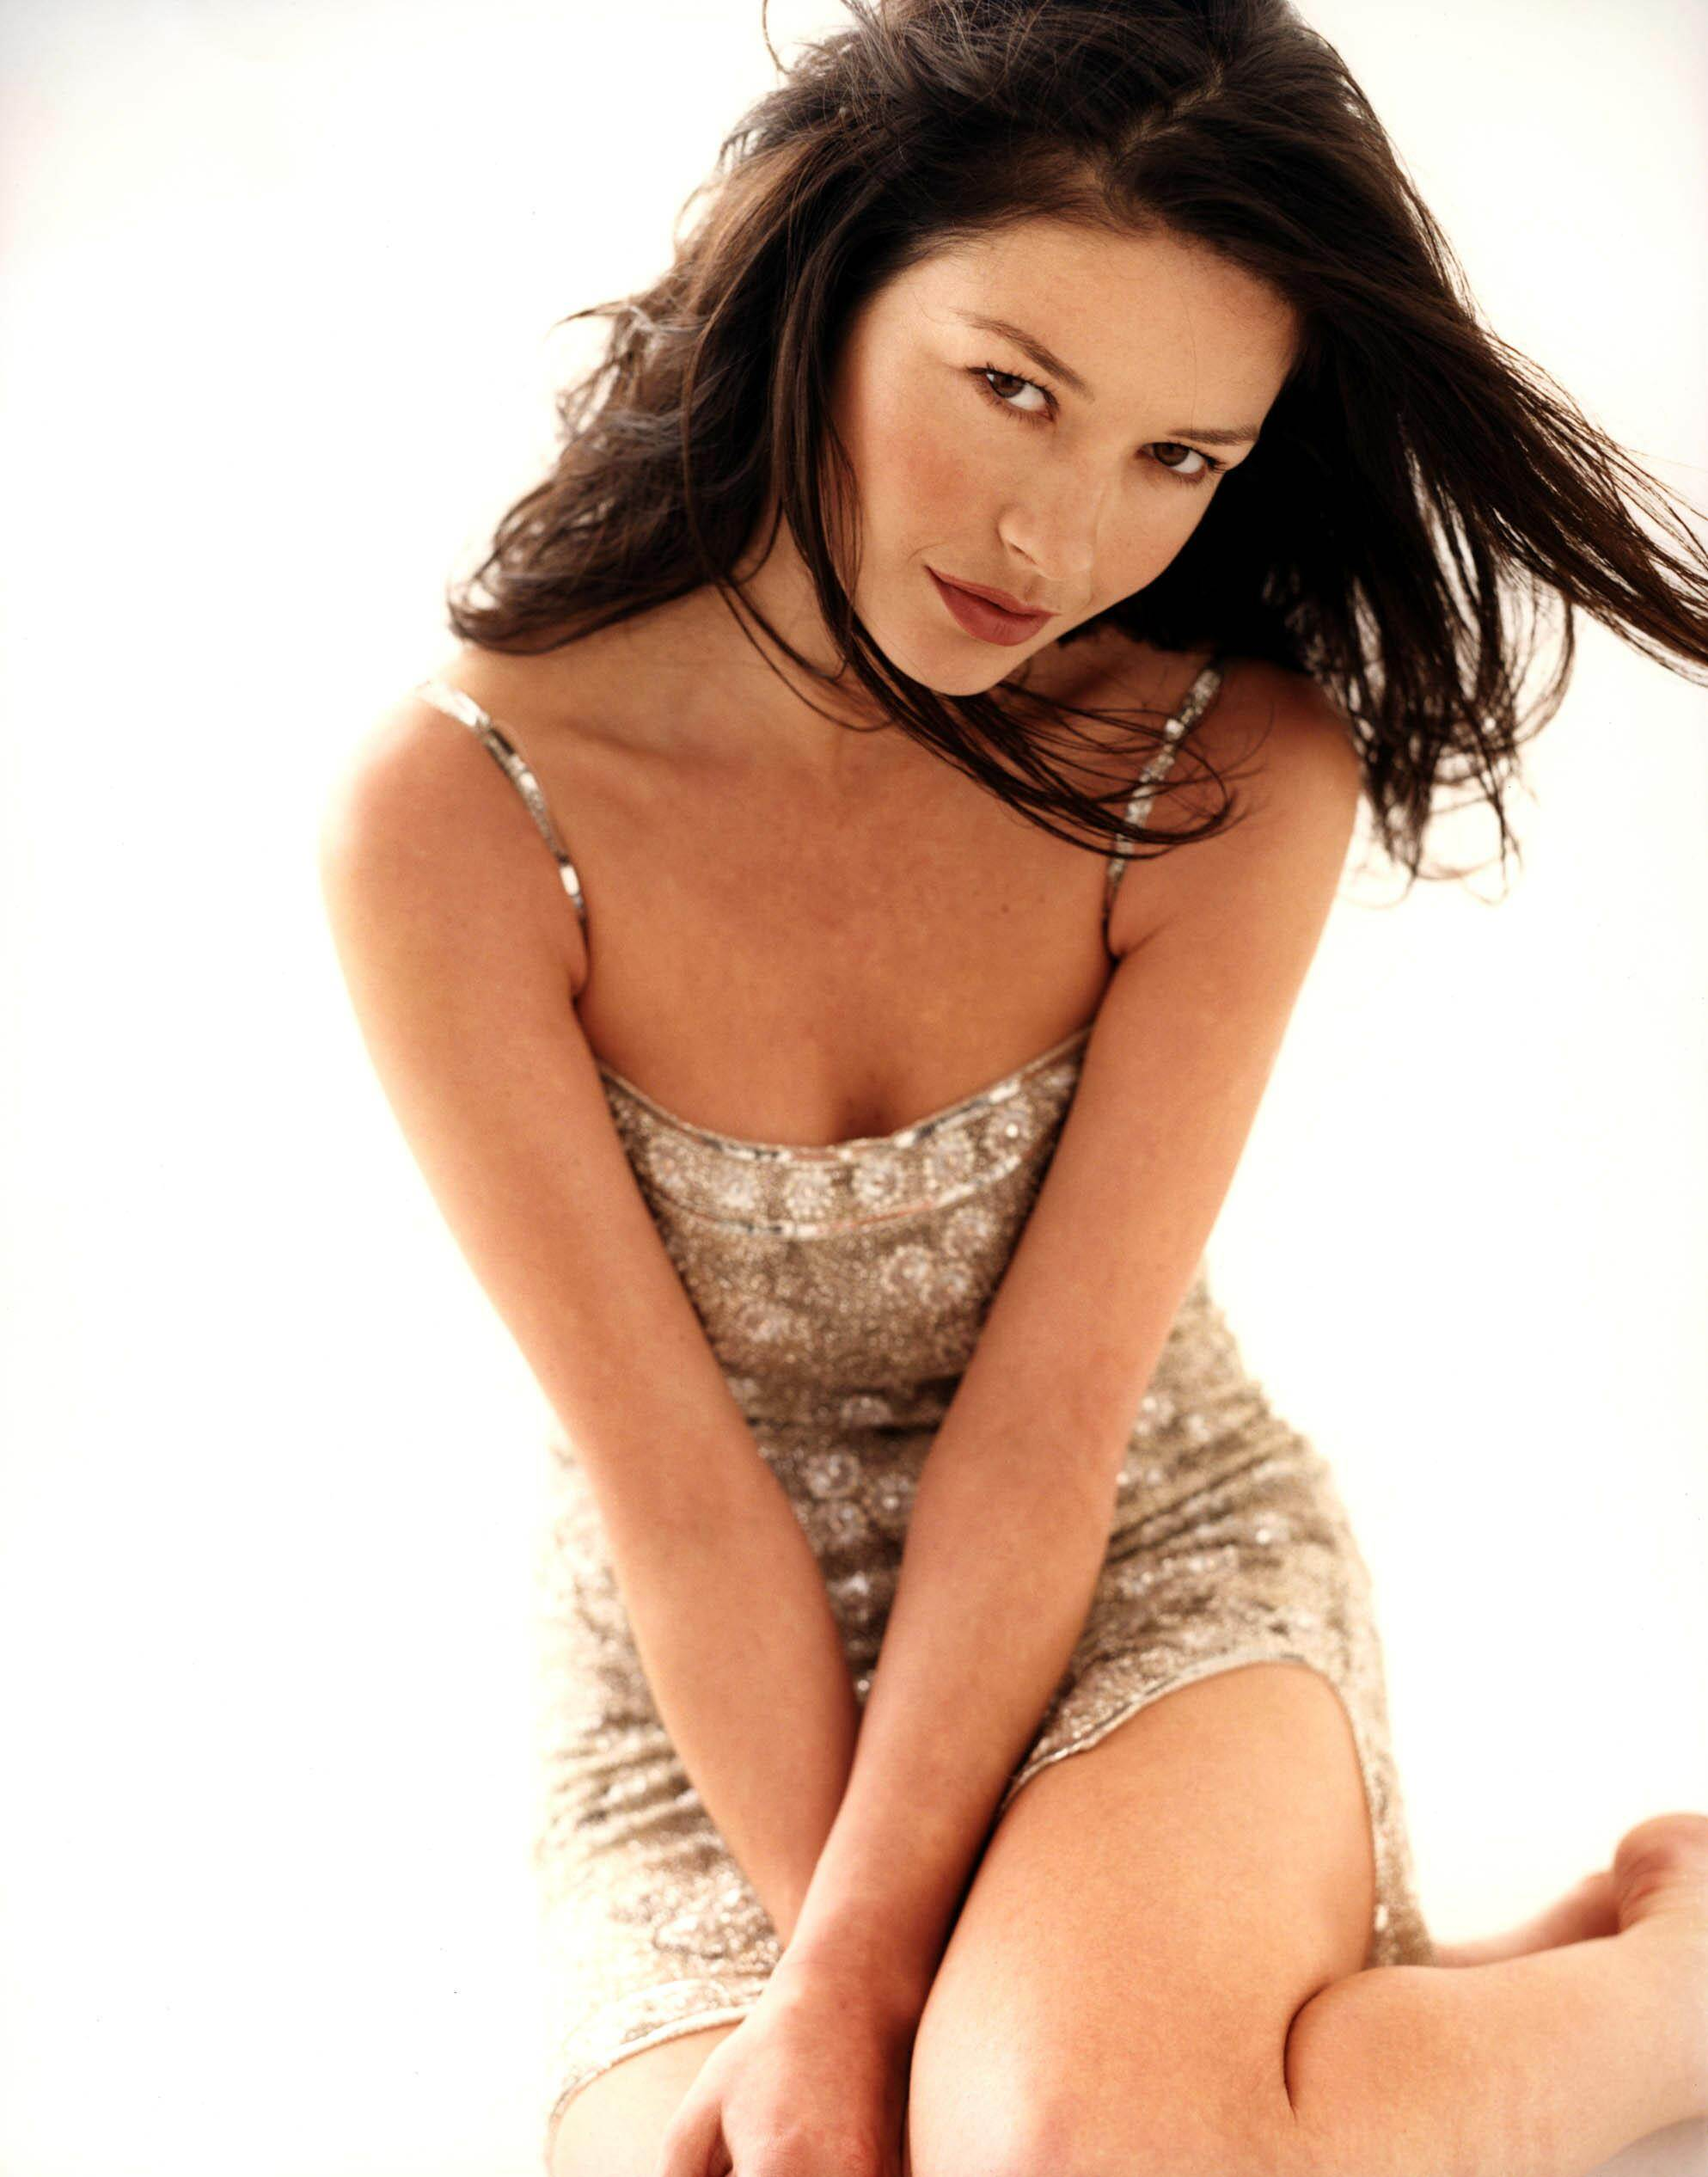 http://sexyfemales.files.wordpress.com/2008/08/catherine_zeta_jones_06110056_0002.jpg